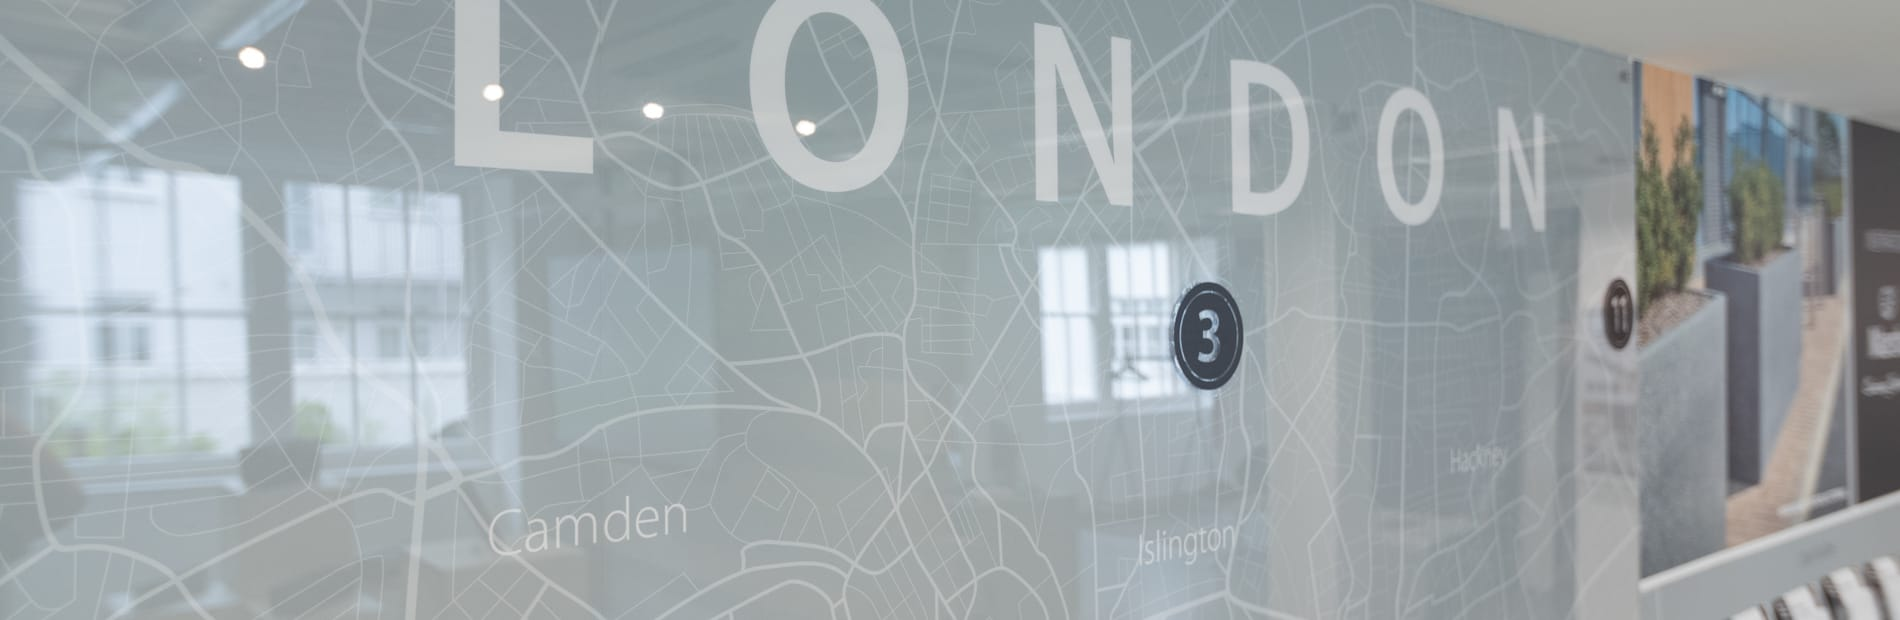 Map of London on the wall of the Design Space